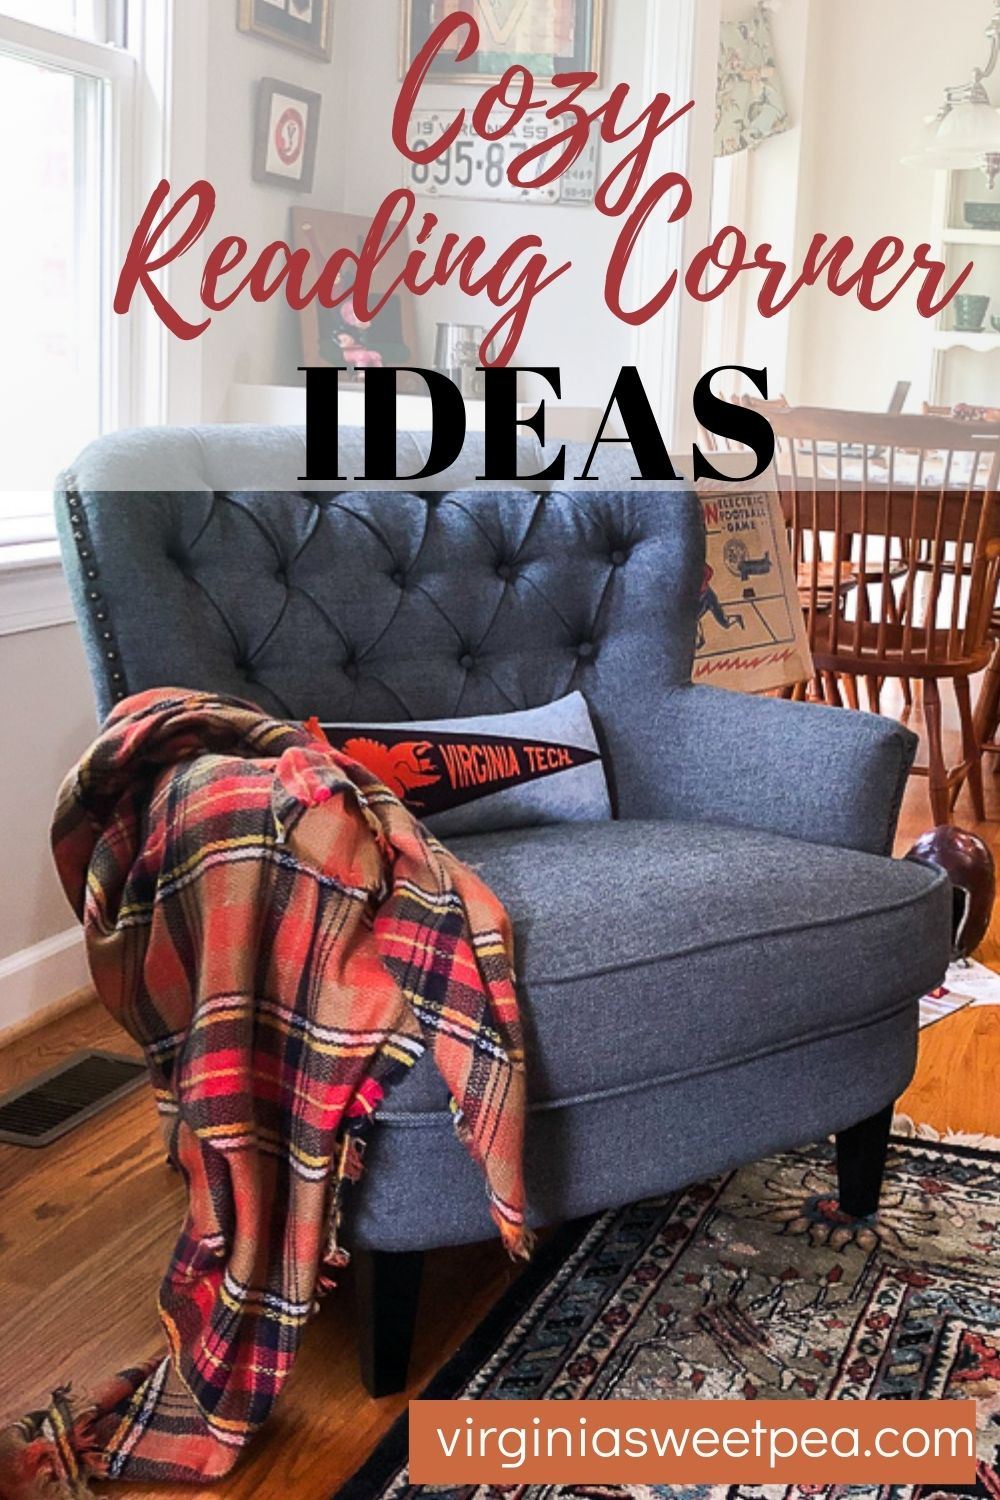 Cozy Reading Corner Ideas - Get ideas for creating a cozy reading corner to enjoy in your home.   via @spaula